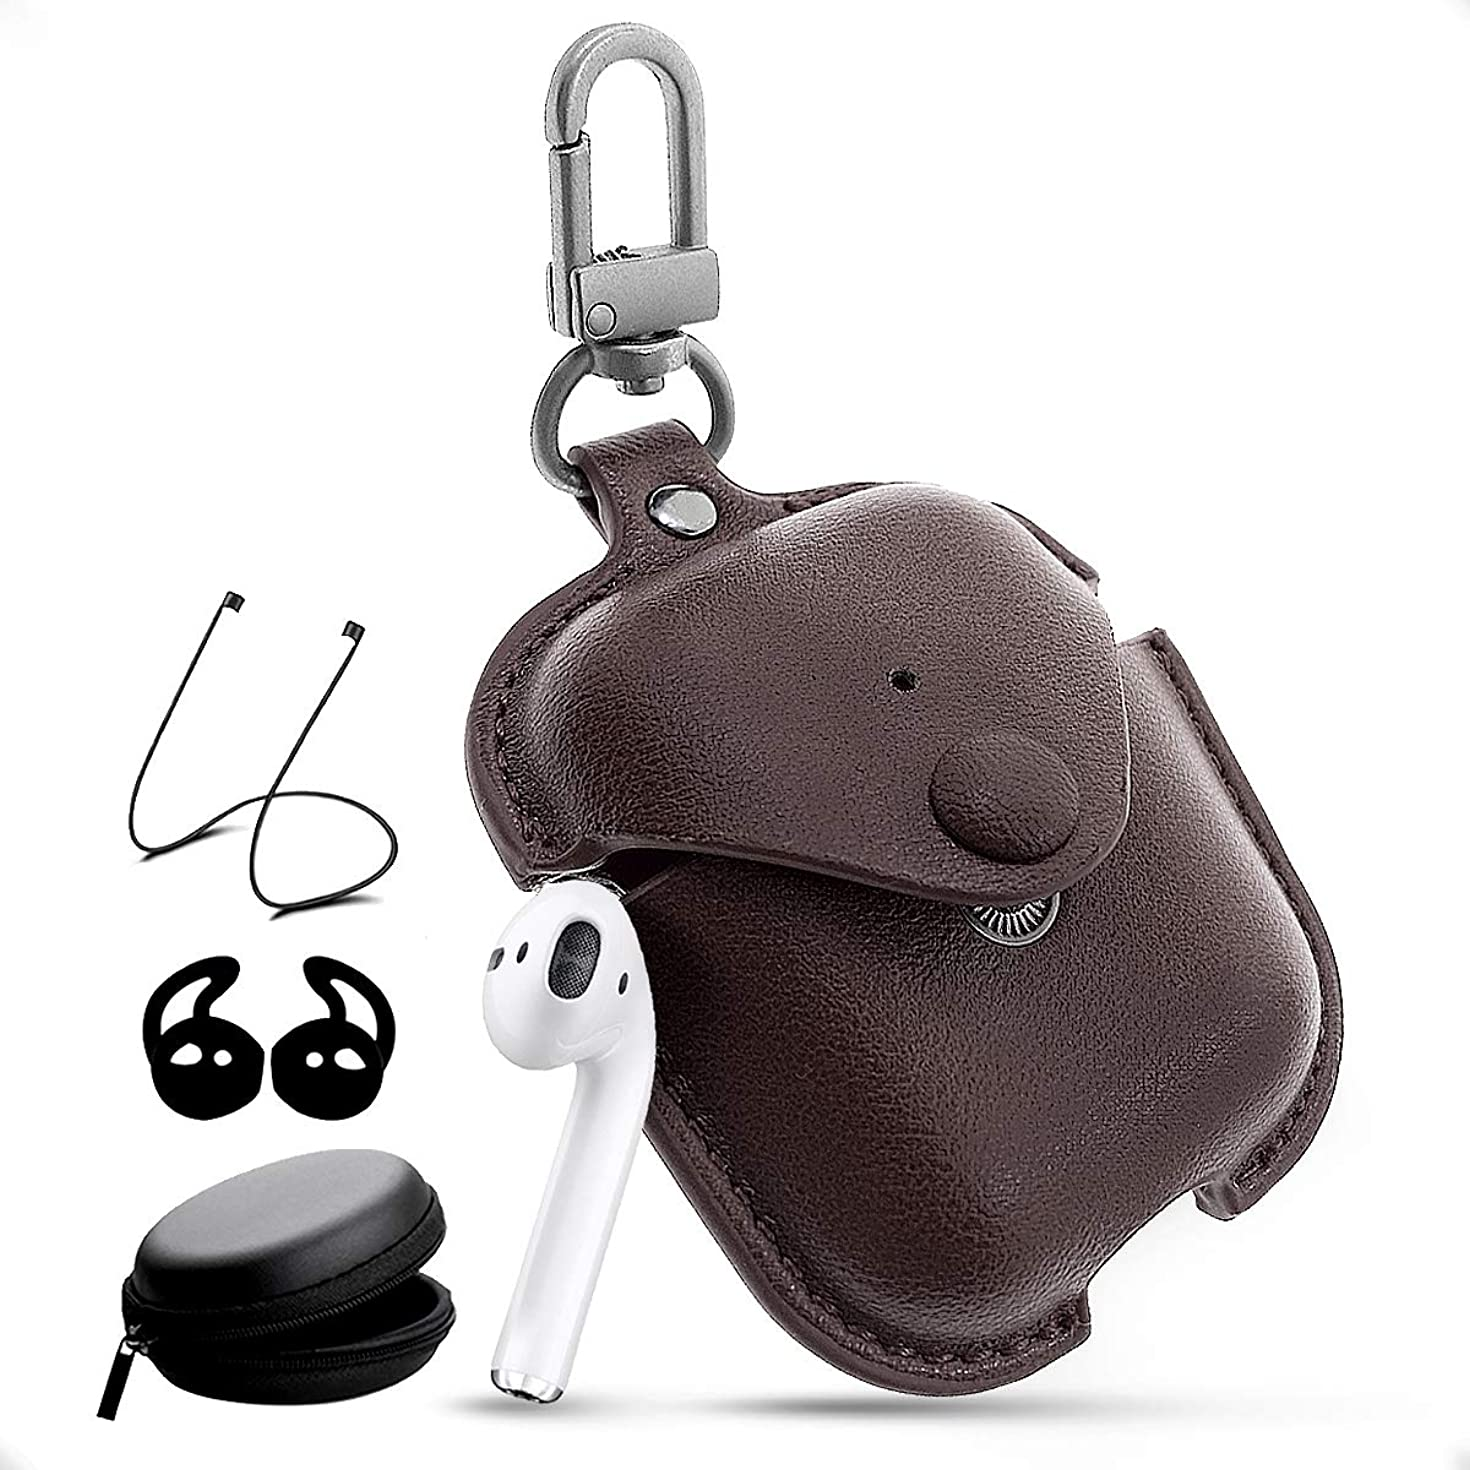 Airpods Leather Case with Strap Kit and Keychain Accessories, Houbox Full Protective Airpod Case Cover for Birthday Compatible Apple Airpods Charging Case (Coffee)